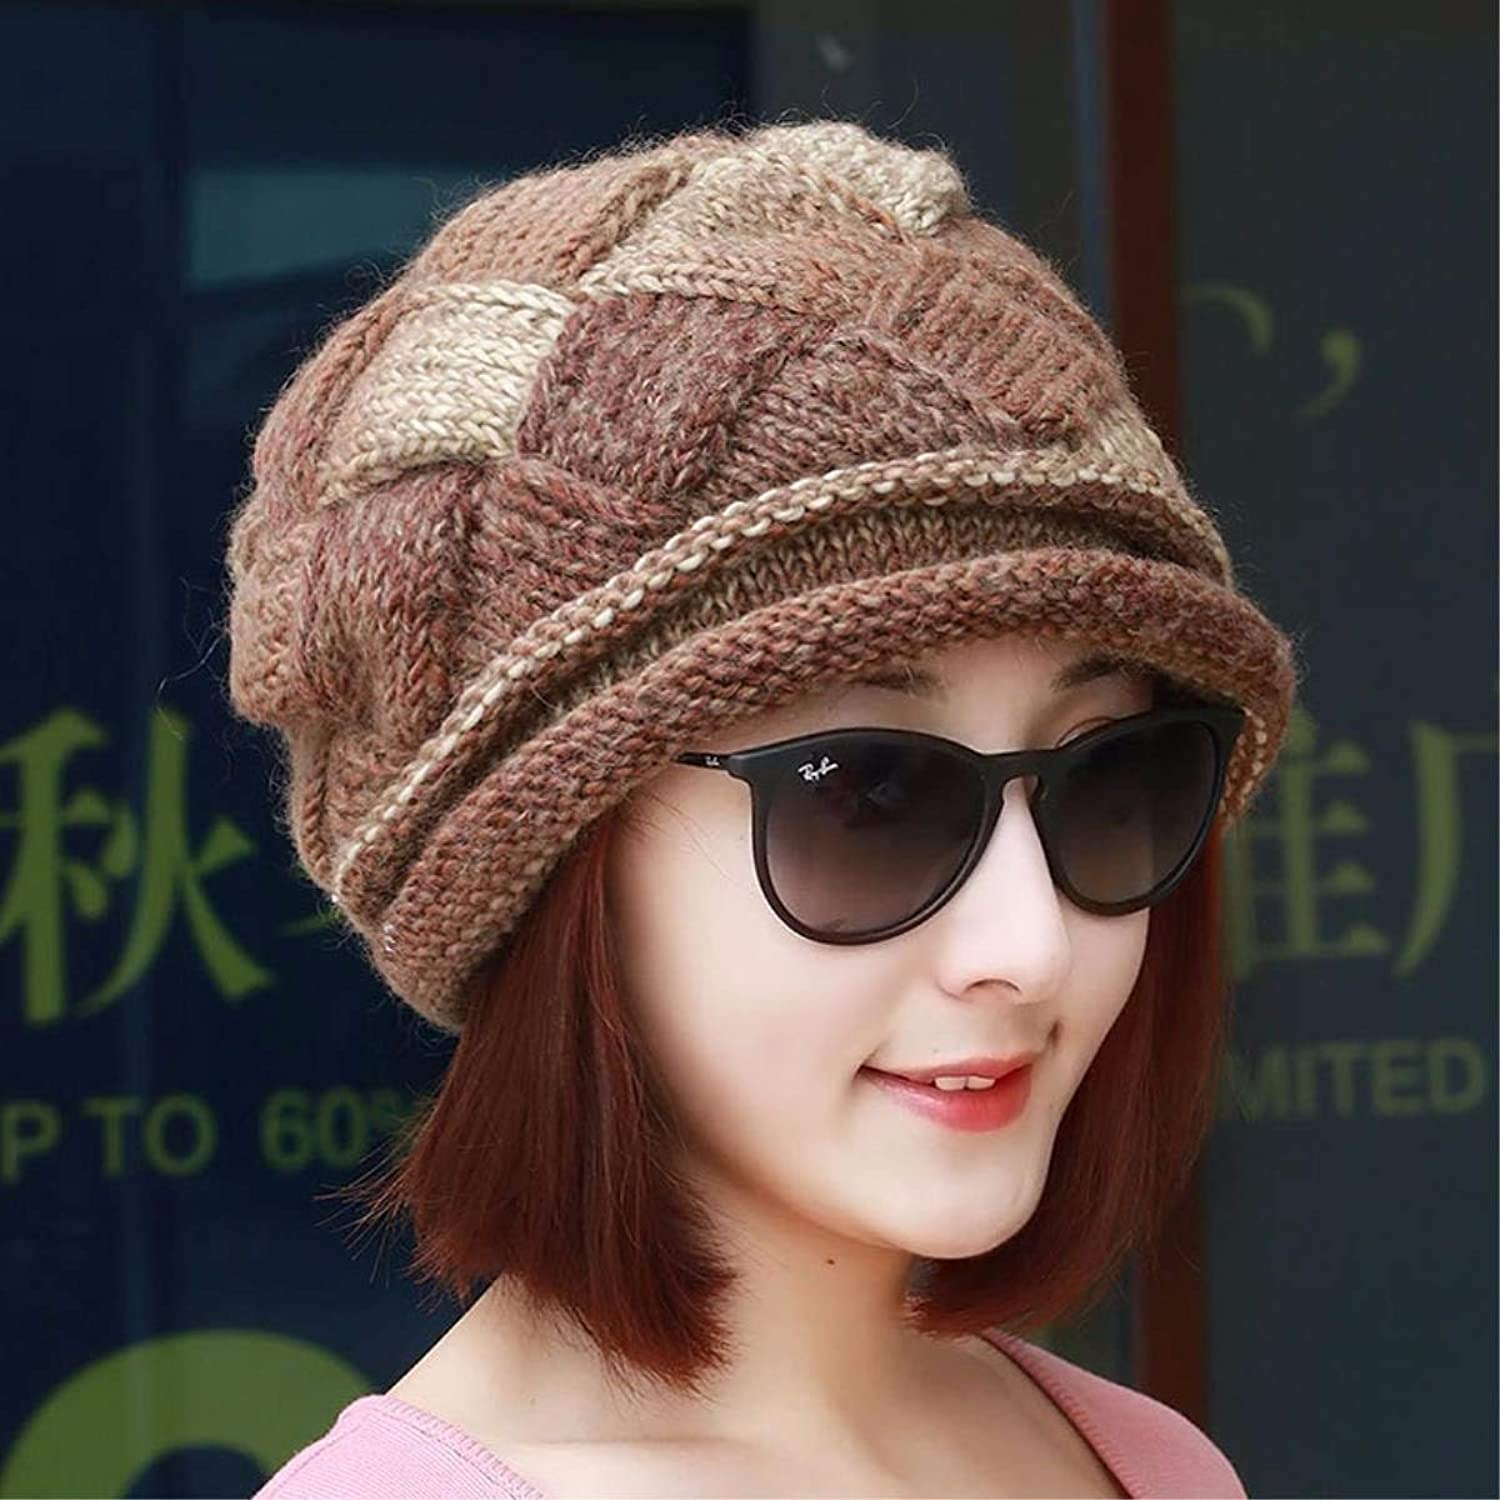 Chuiqingnet Hat female autumn and winter thick wool knitting hat knitting hat, ear cap Baotou hat